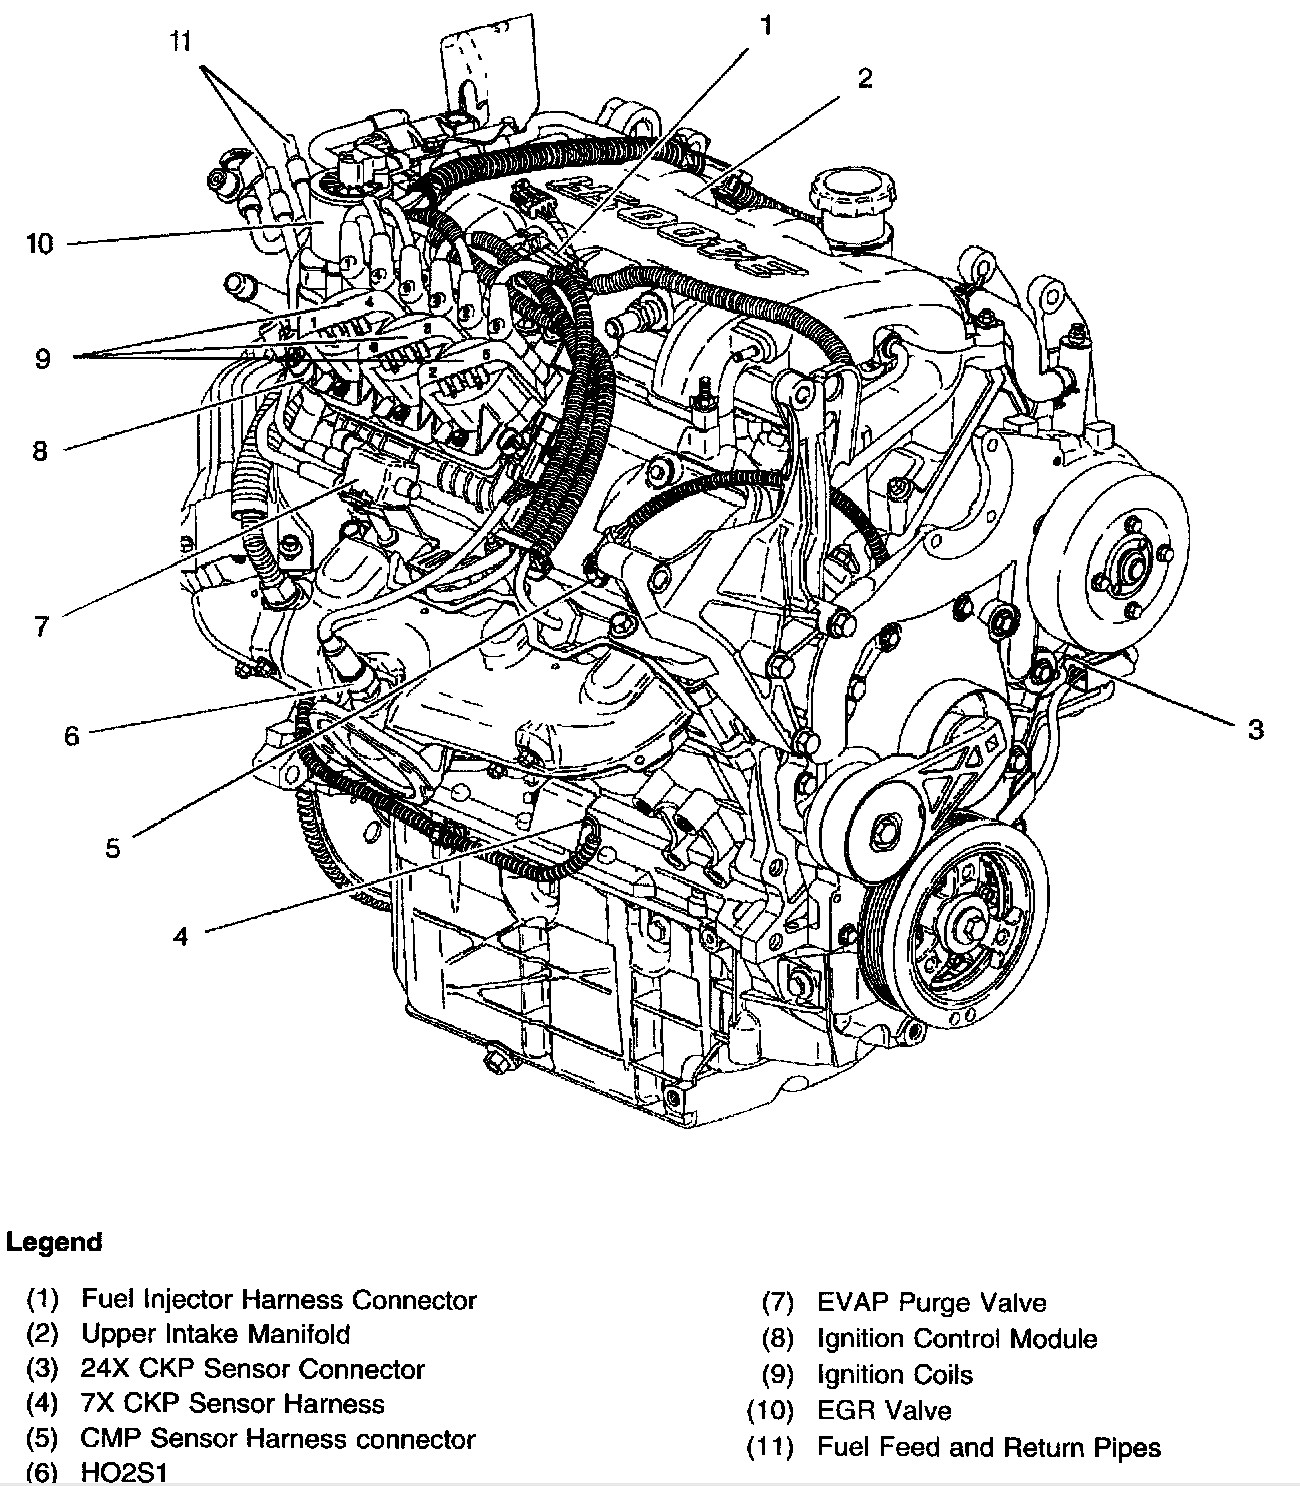 chevy v6 vortec diagram data wiring diagram updatechevy v6 vortec diagram wiring diagram write gm vortec engine chevy v6 vortec diagram